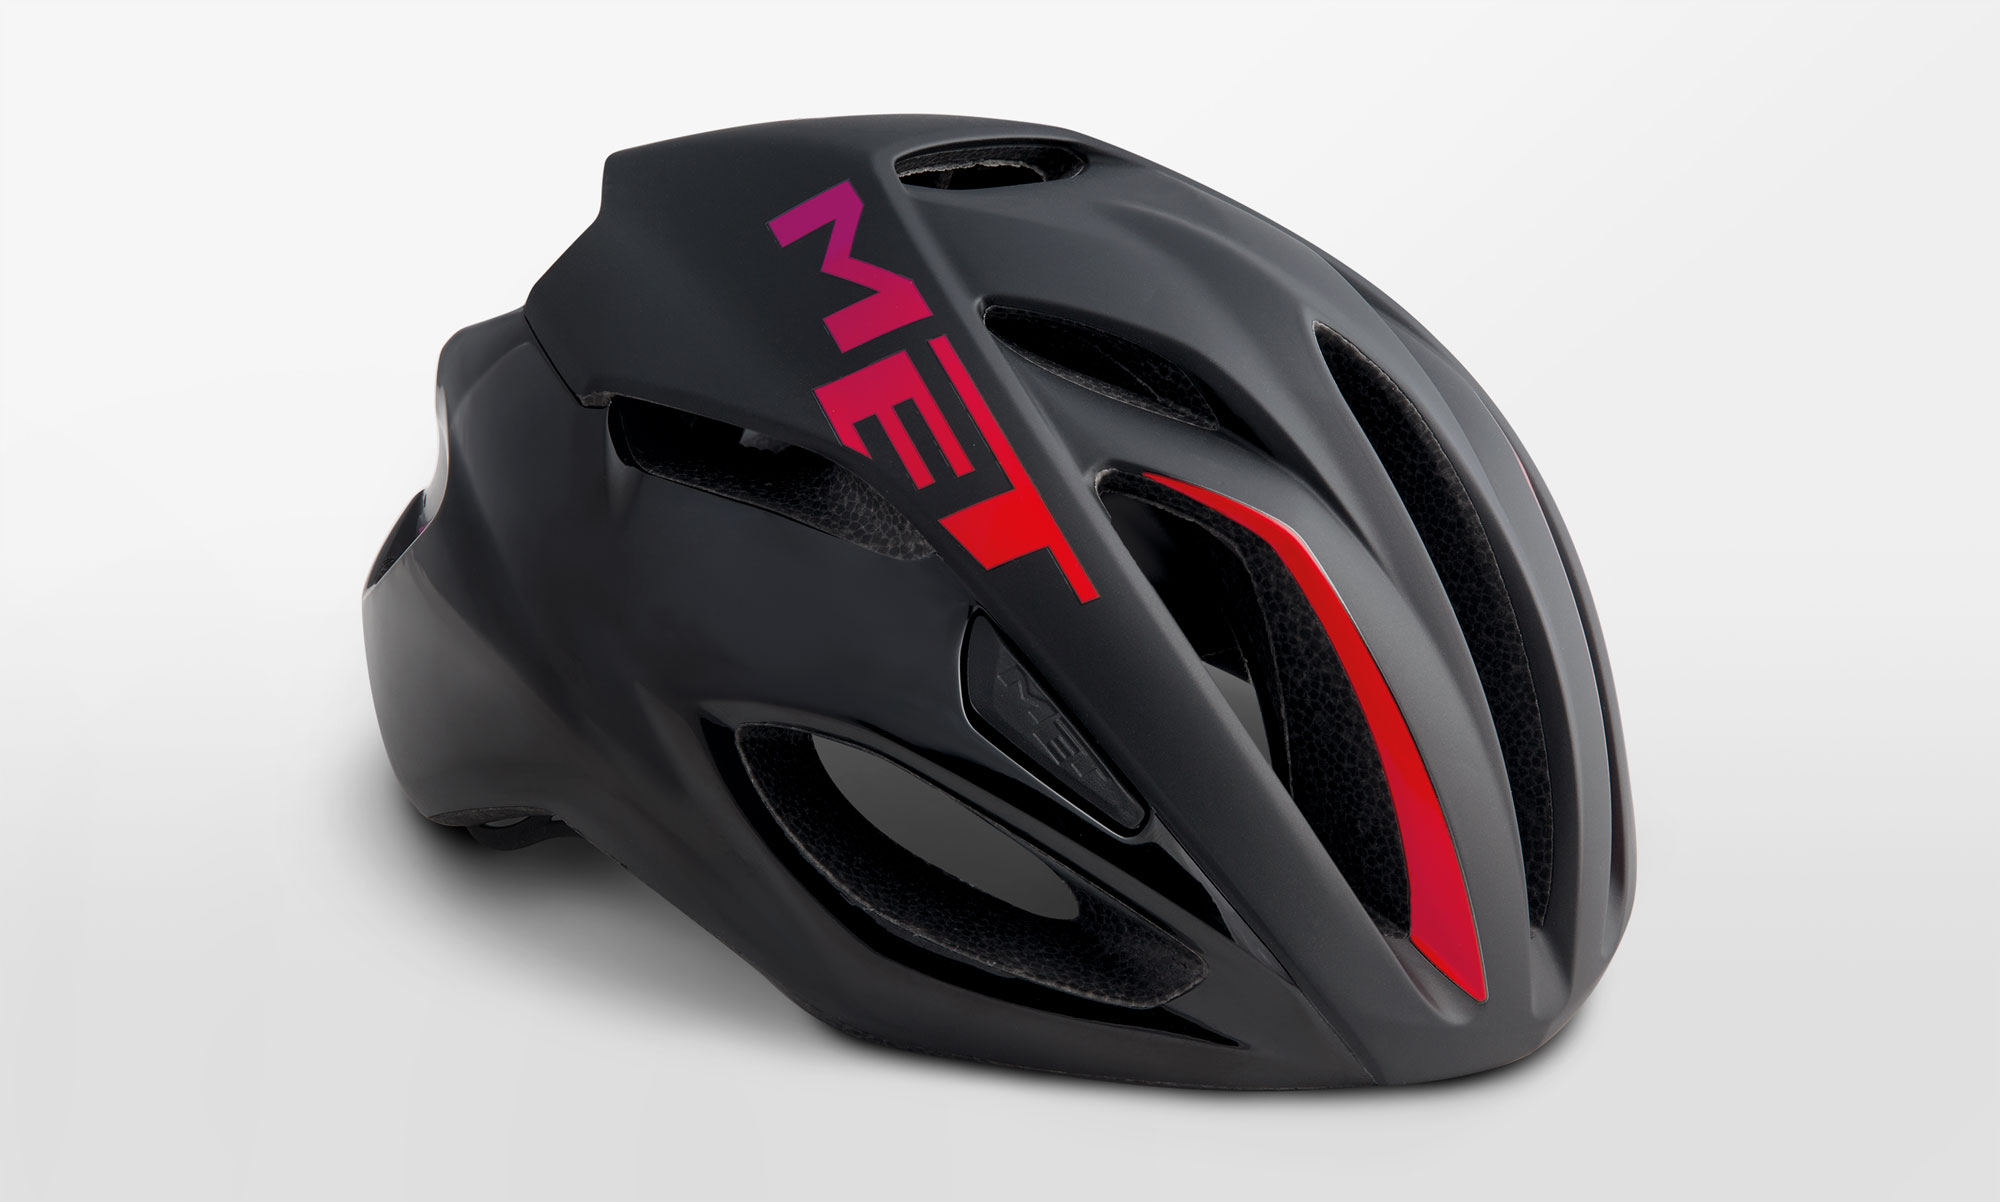 Rivale - The MET Rivale keeps things as compact as possible, without cutting down drastically on the number of vents.At 230g the MET Rivale gives nothing away in the power-to-weight stakes, despite being primarily an aero helmet.